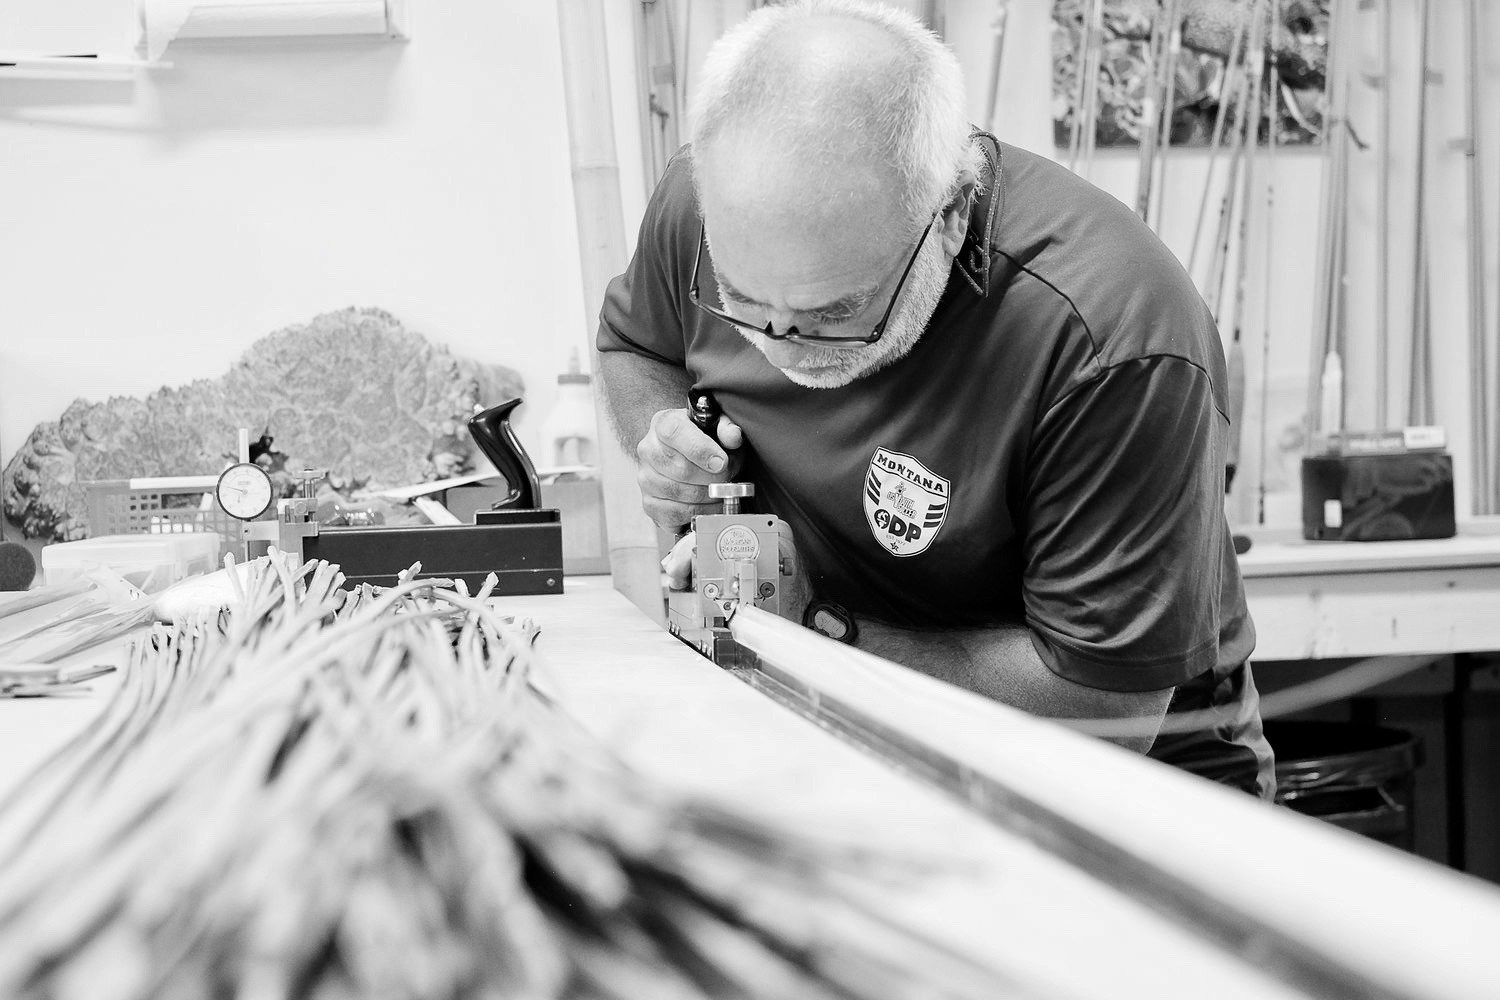 BAMBOO ROD BUILDING CLASSES